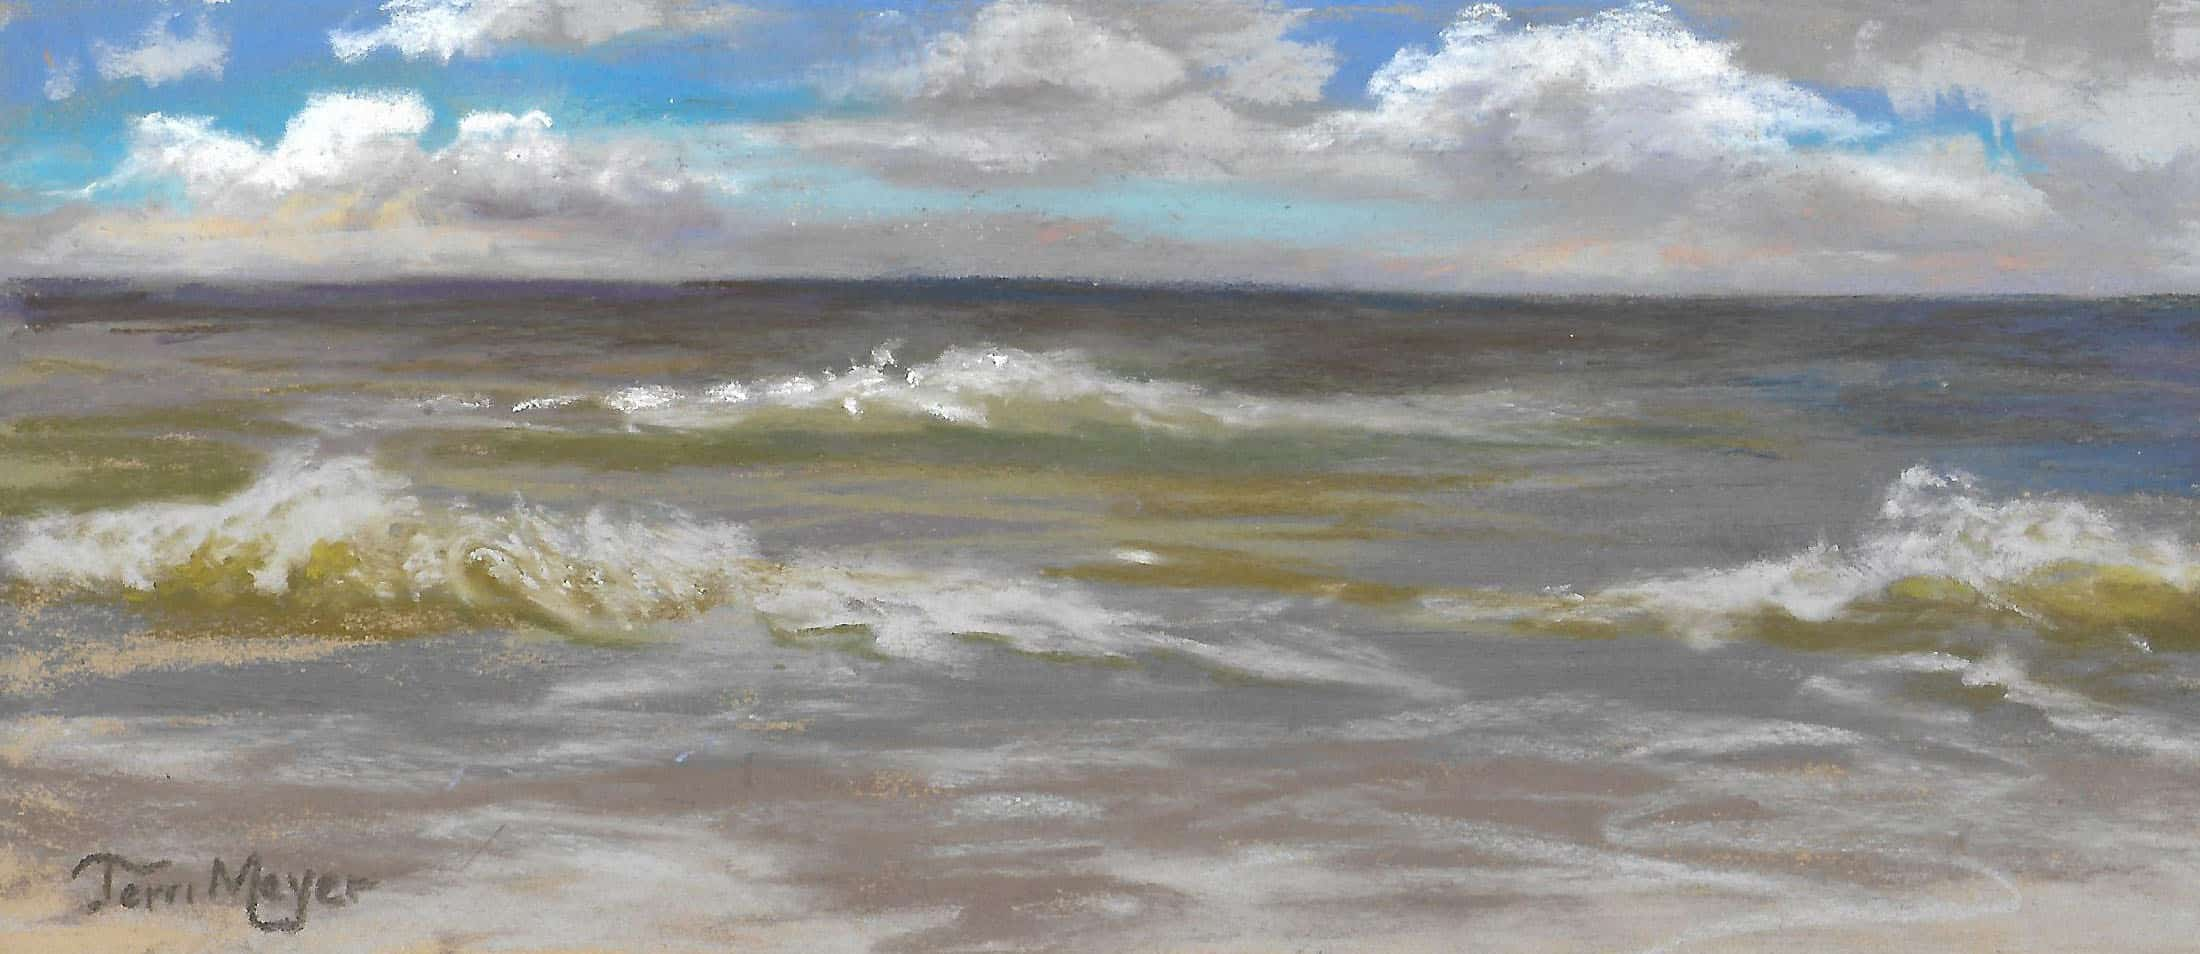 Nature Park, Myrtle Beach, SC - Plein Air Painting by Ohio Artist Terri Meyer